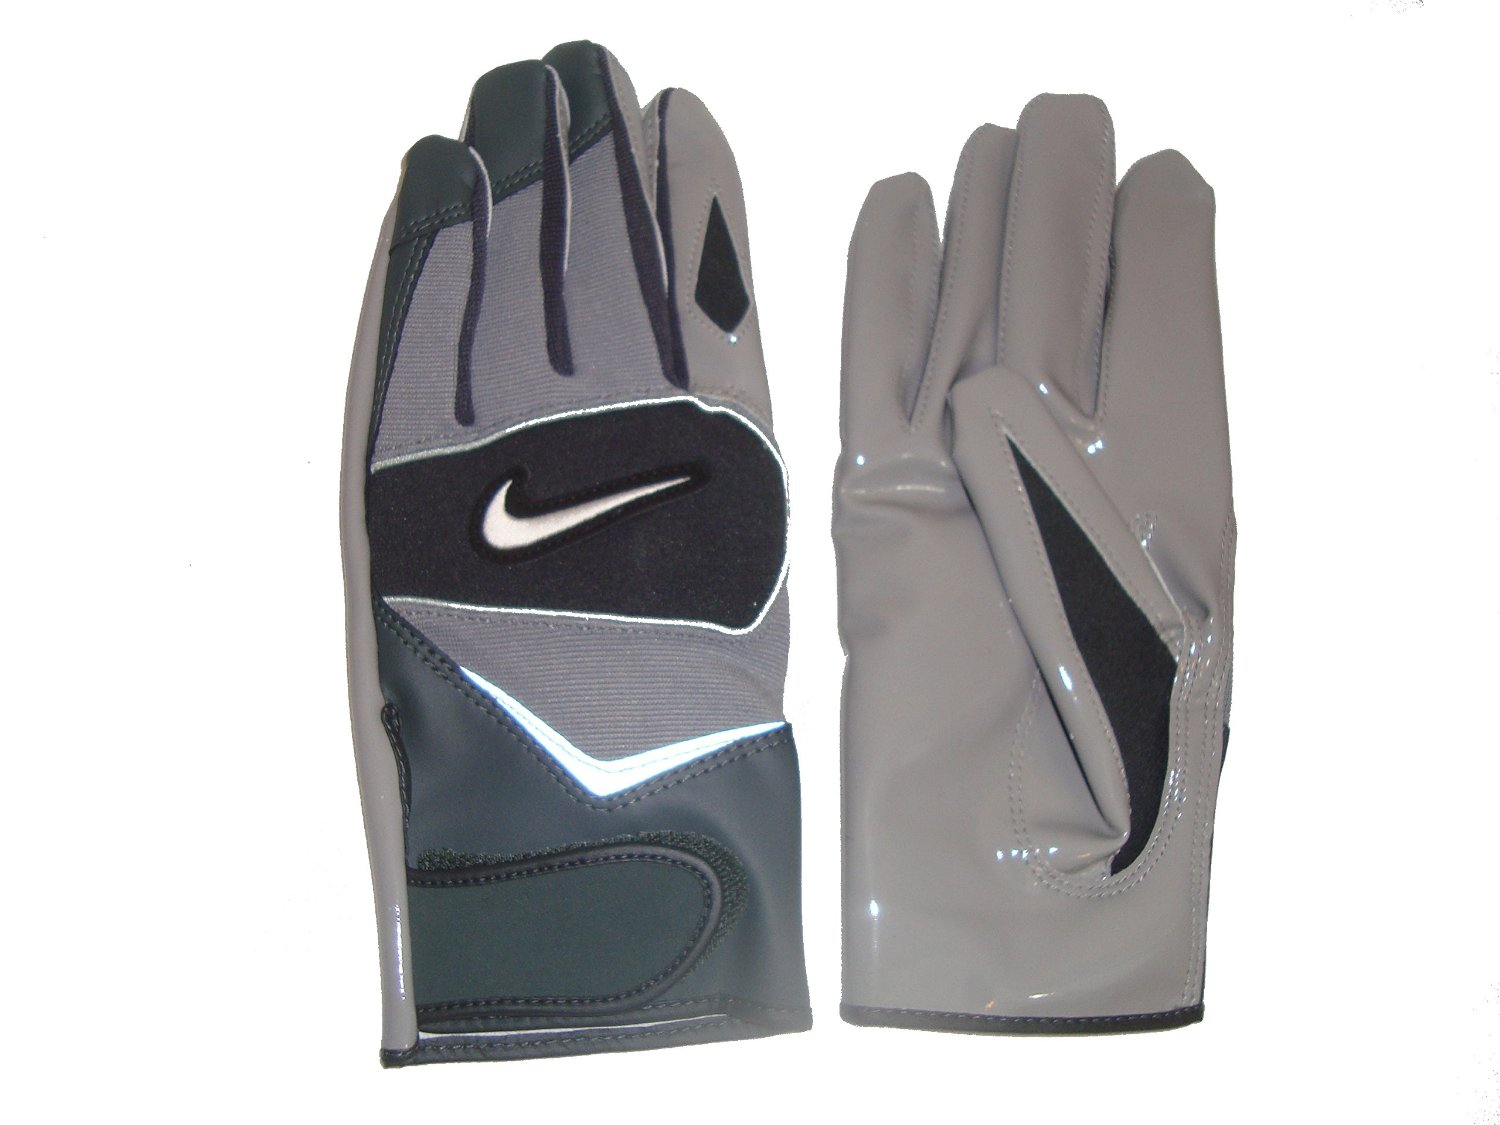 Buy Nike Speedtack V Magnigrip-College Football Gloves Silicone Palm ... 89bc5ddc8